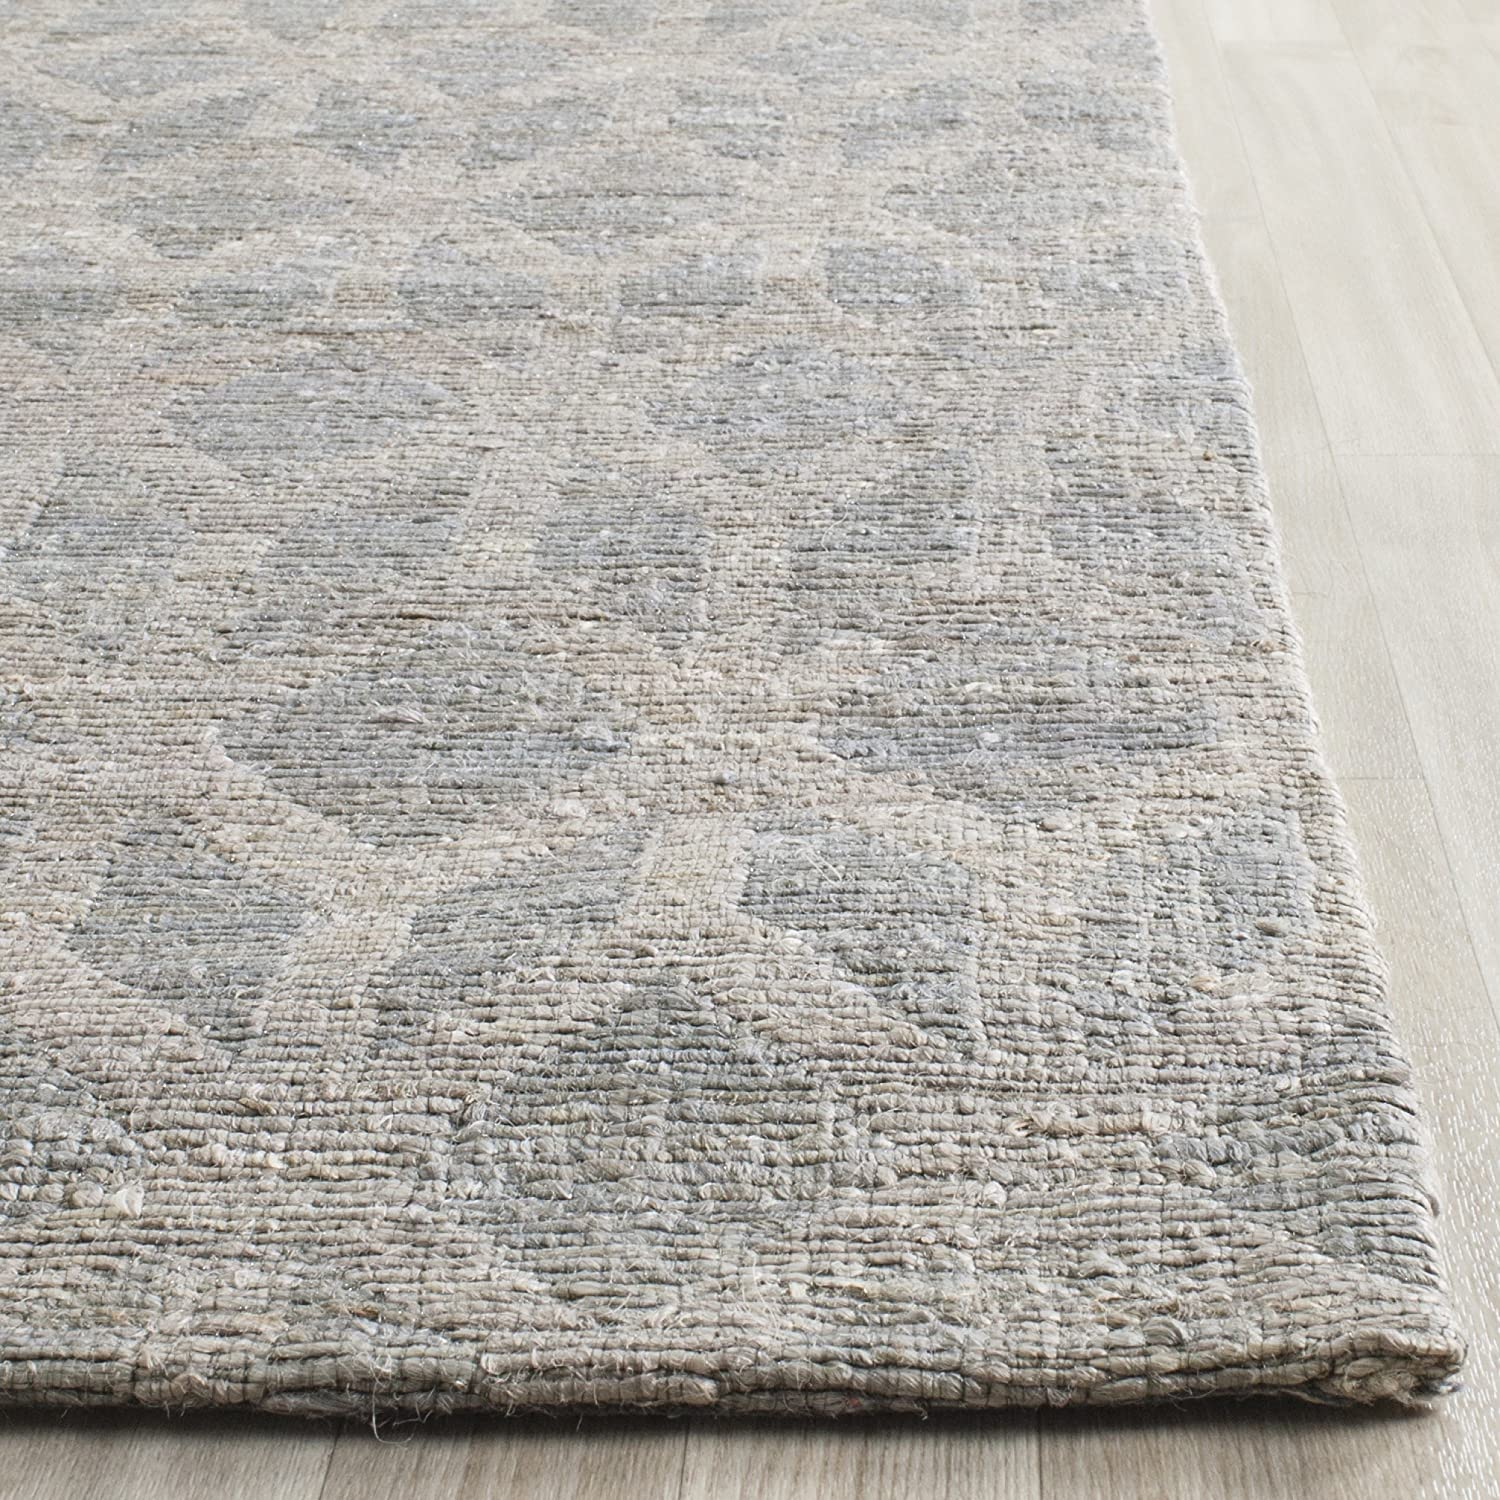 blue x flatweave amazon jute diamond and dining com cod geometric soft woven rug safavieh kitchen fiber hand area collection cape rugs natural dp